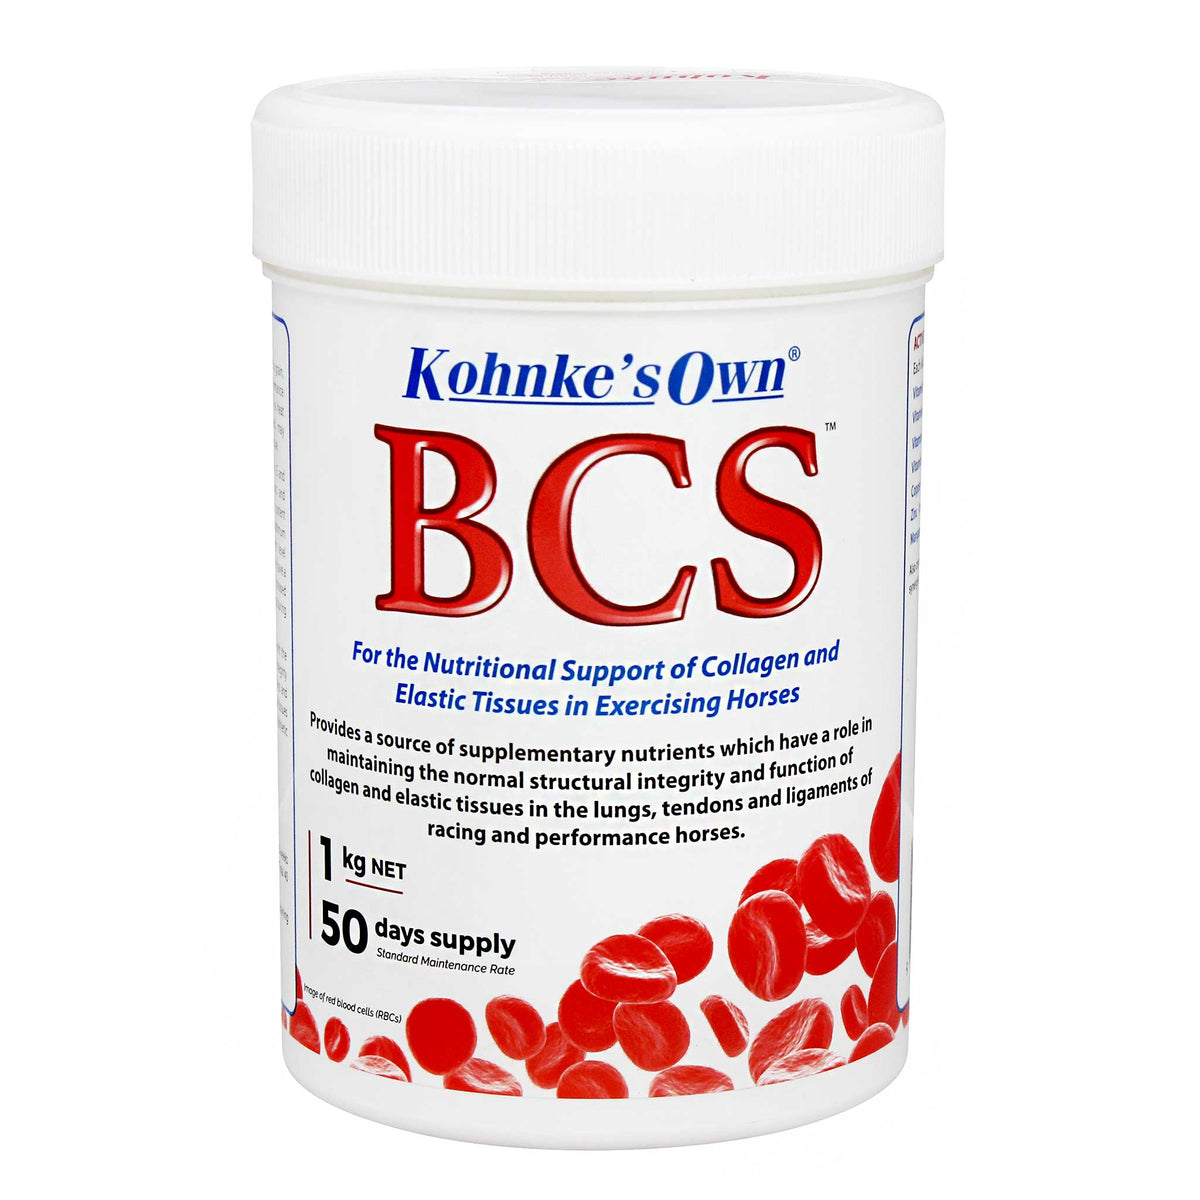 Kohnke's Own BCS Collagen and Elastic Tissue Support for Horses